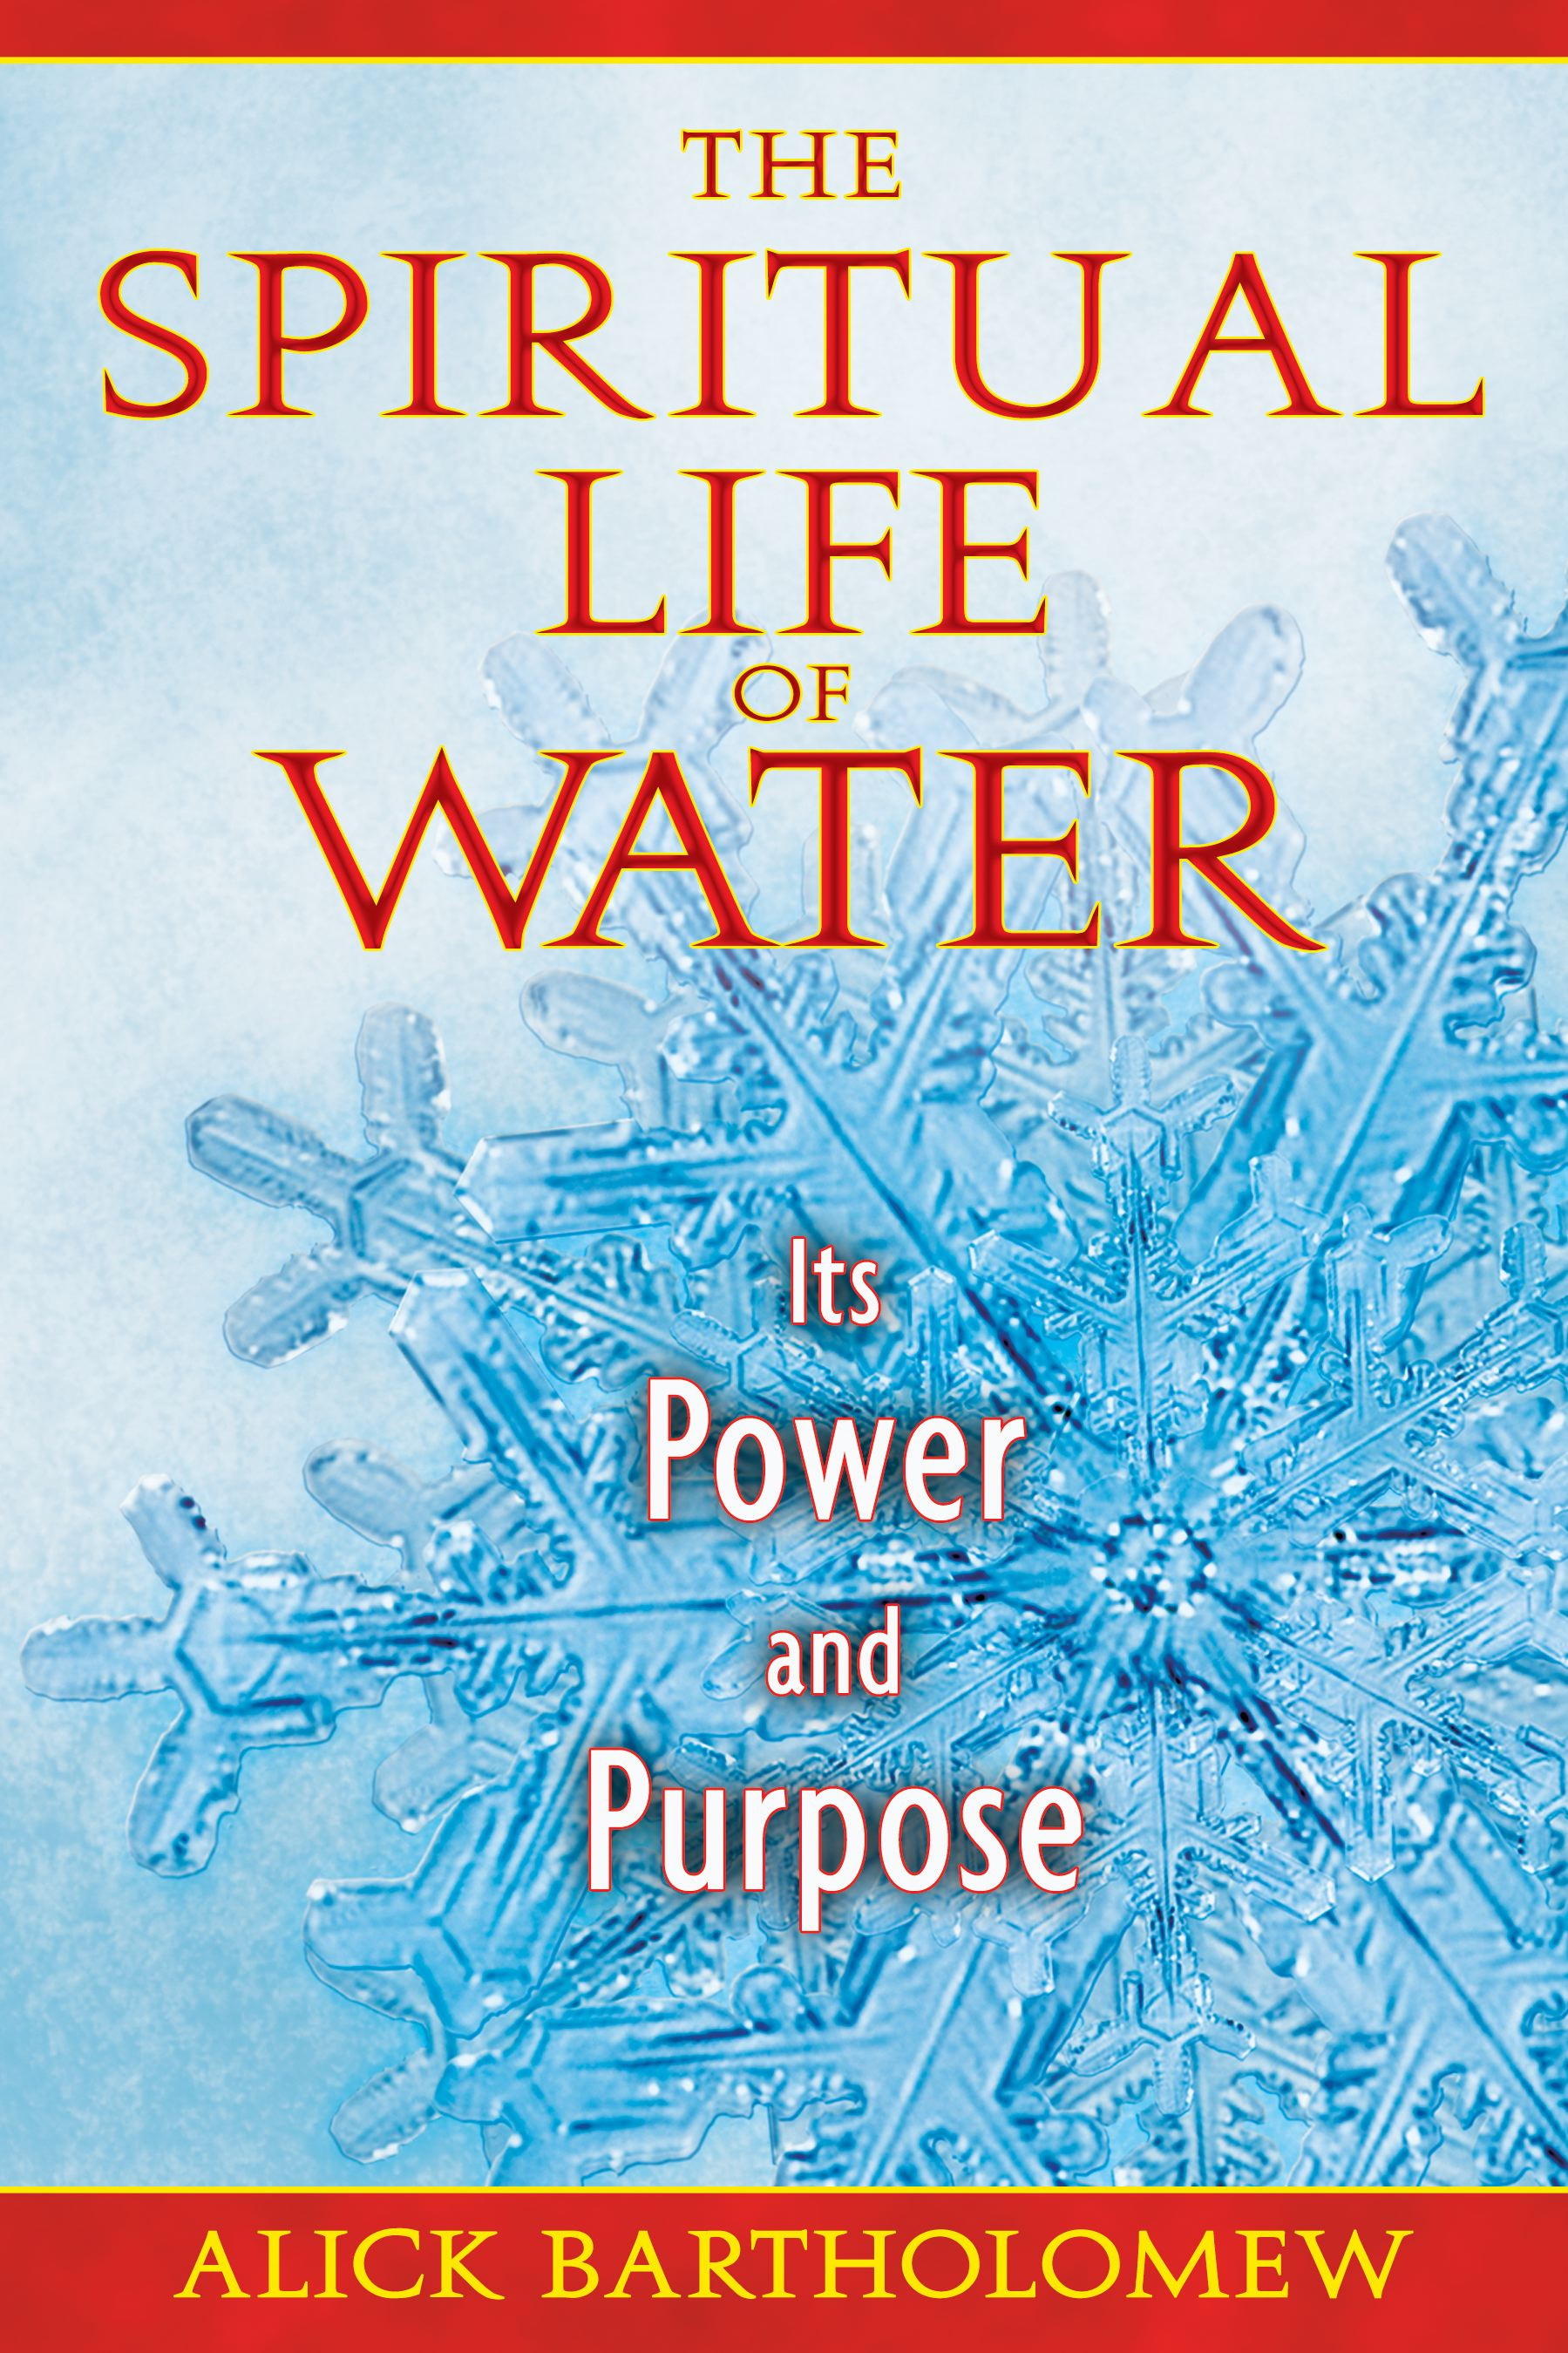 The-spiritual-life-of-water-9781594773600_hr